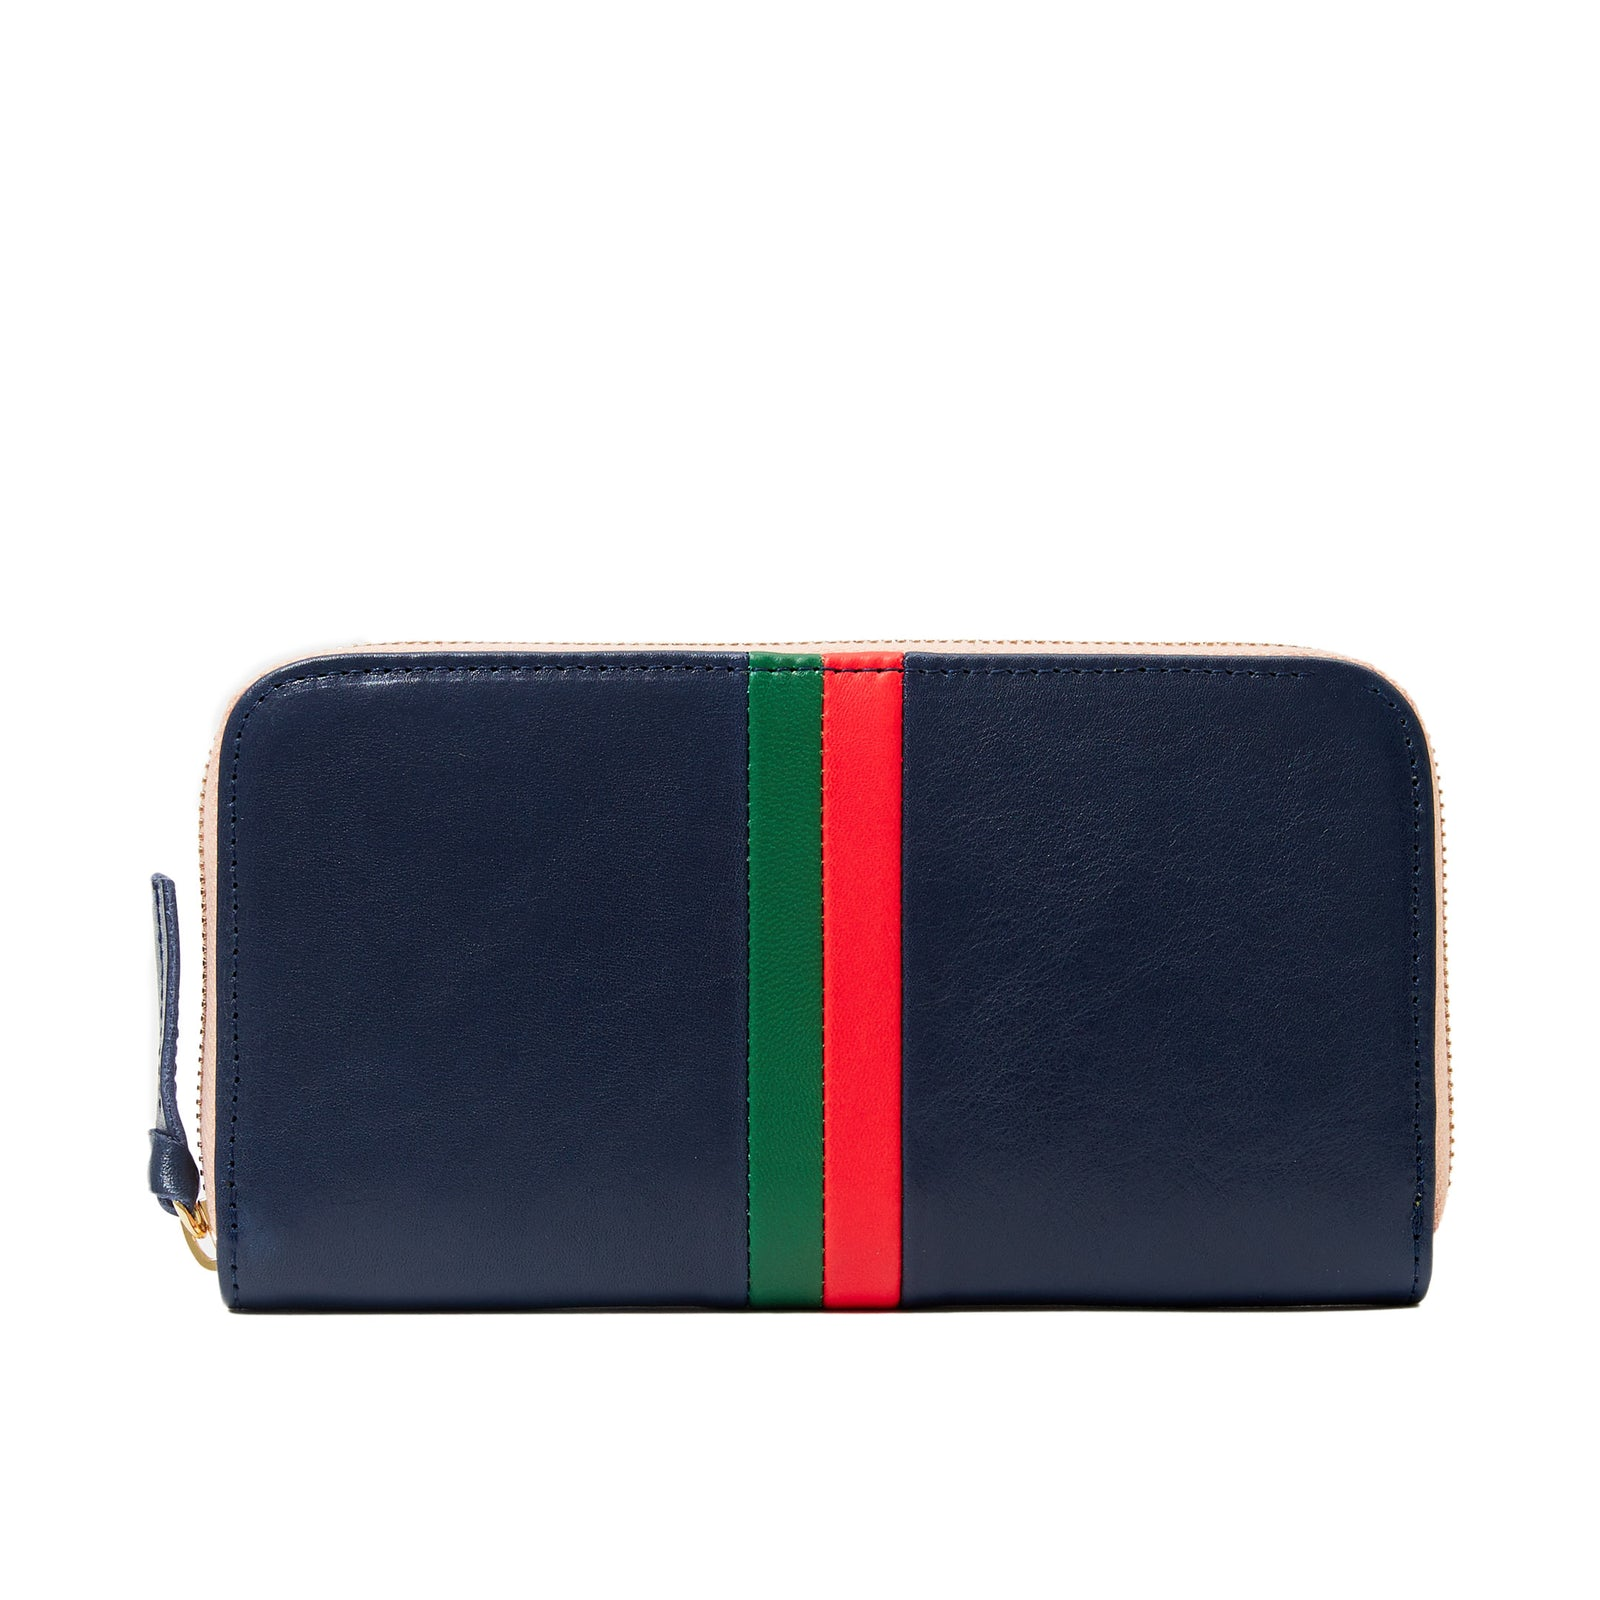 Navy Rustic with Fern and Lipstick Desert Stripes Zip Wallet